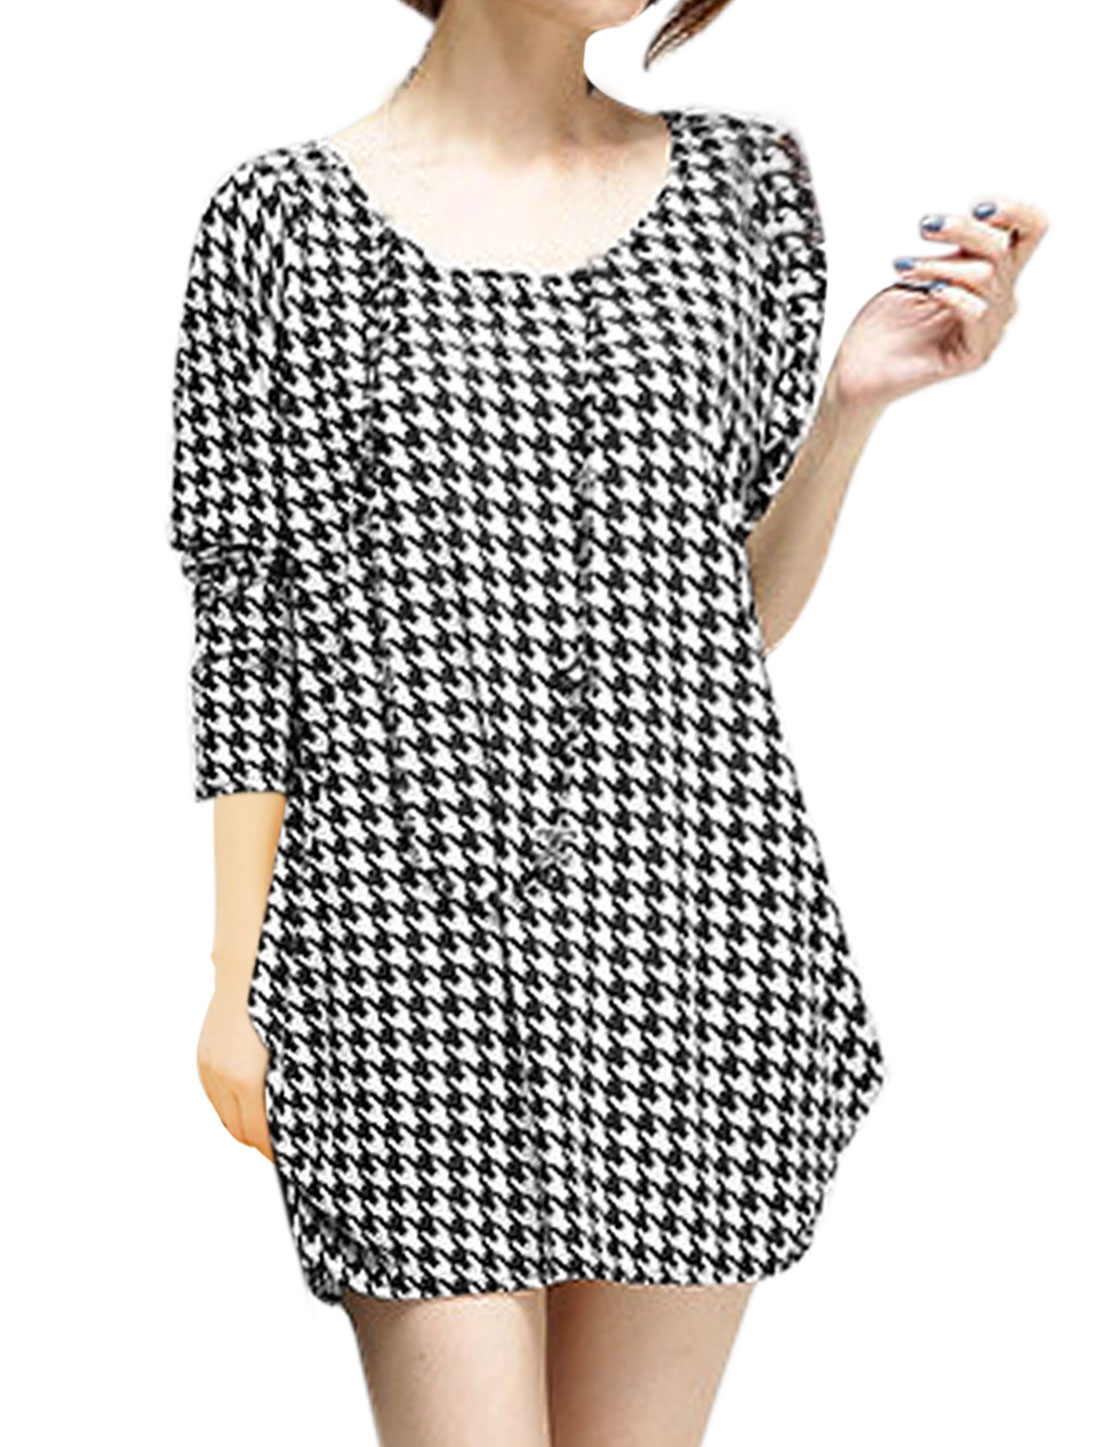 Women Scoop Neck Houndstooth Loose Fit Knit Blouses Blacks Whites XS